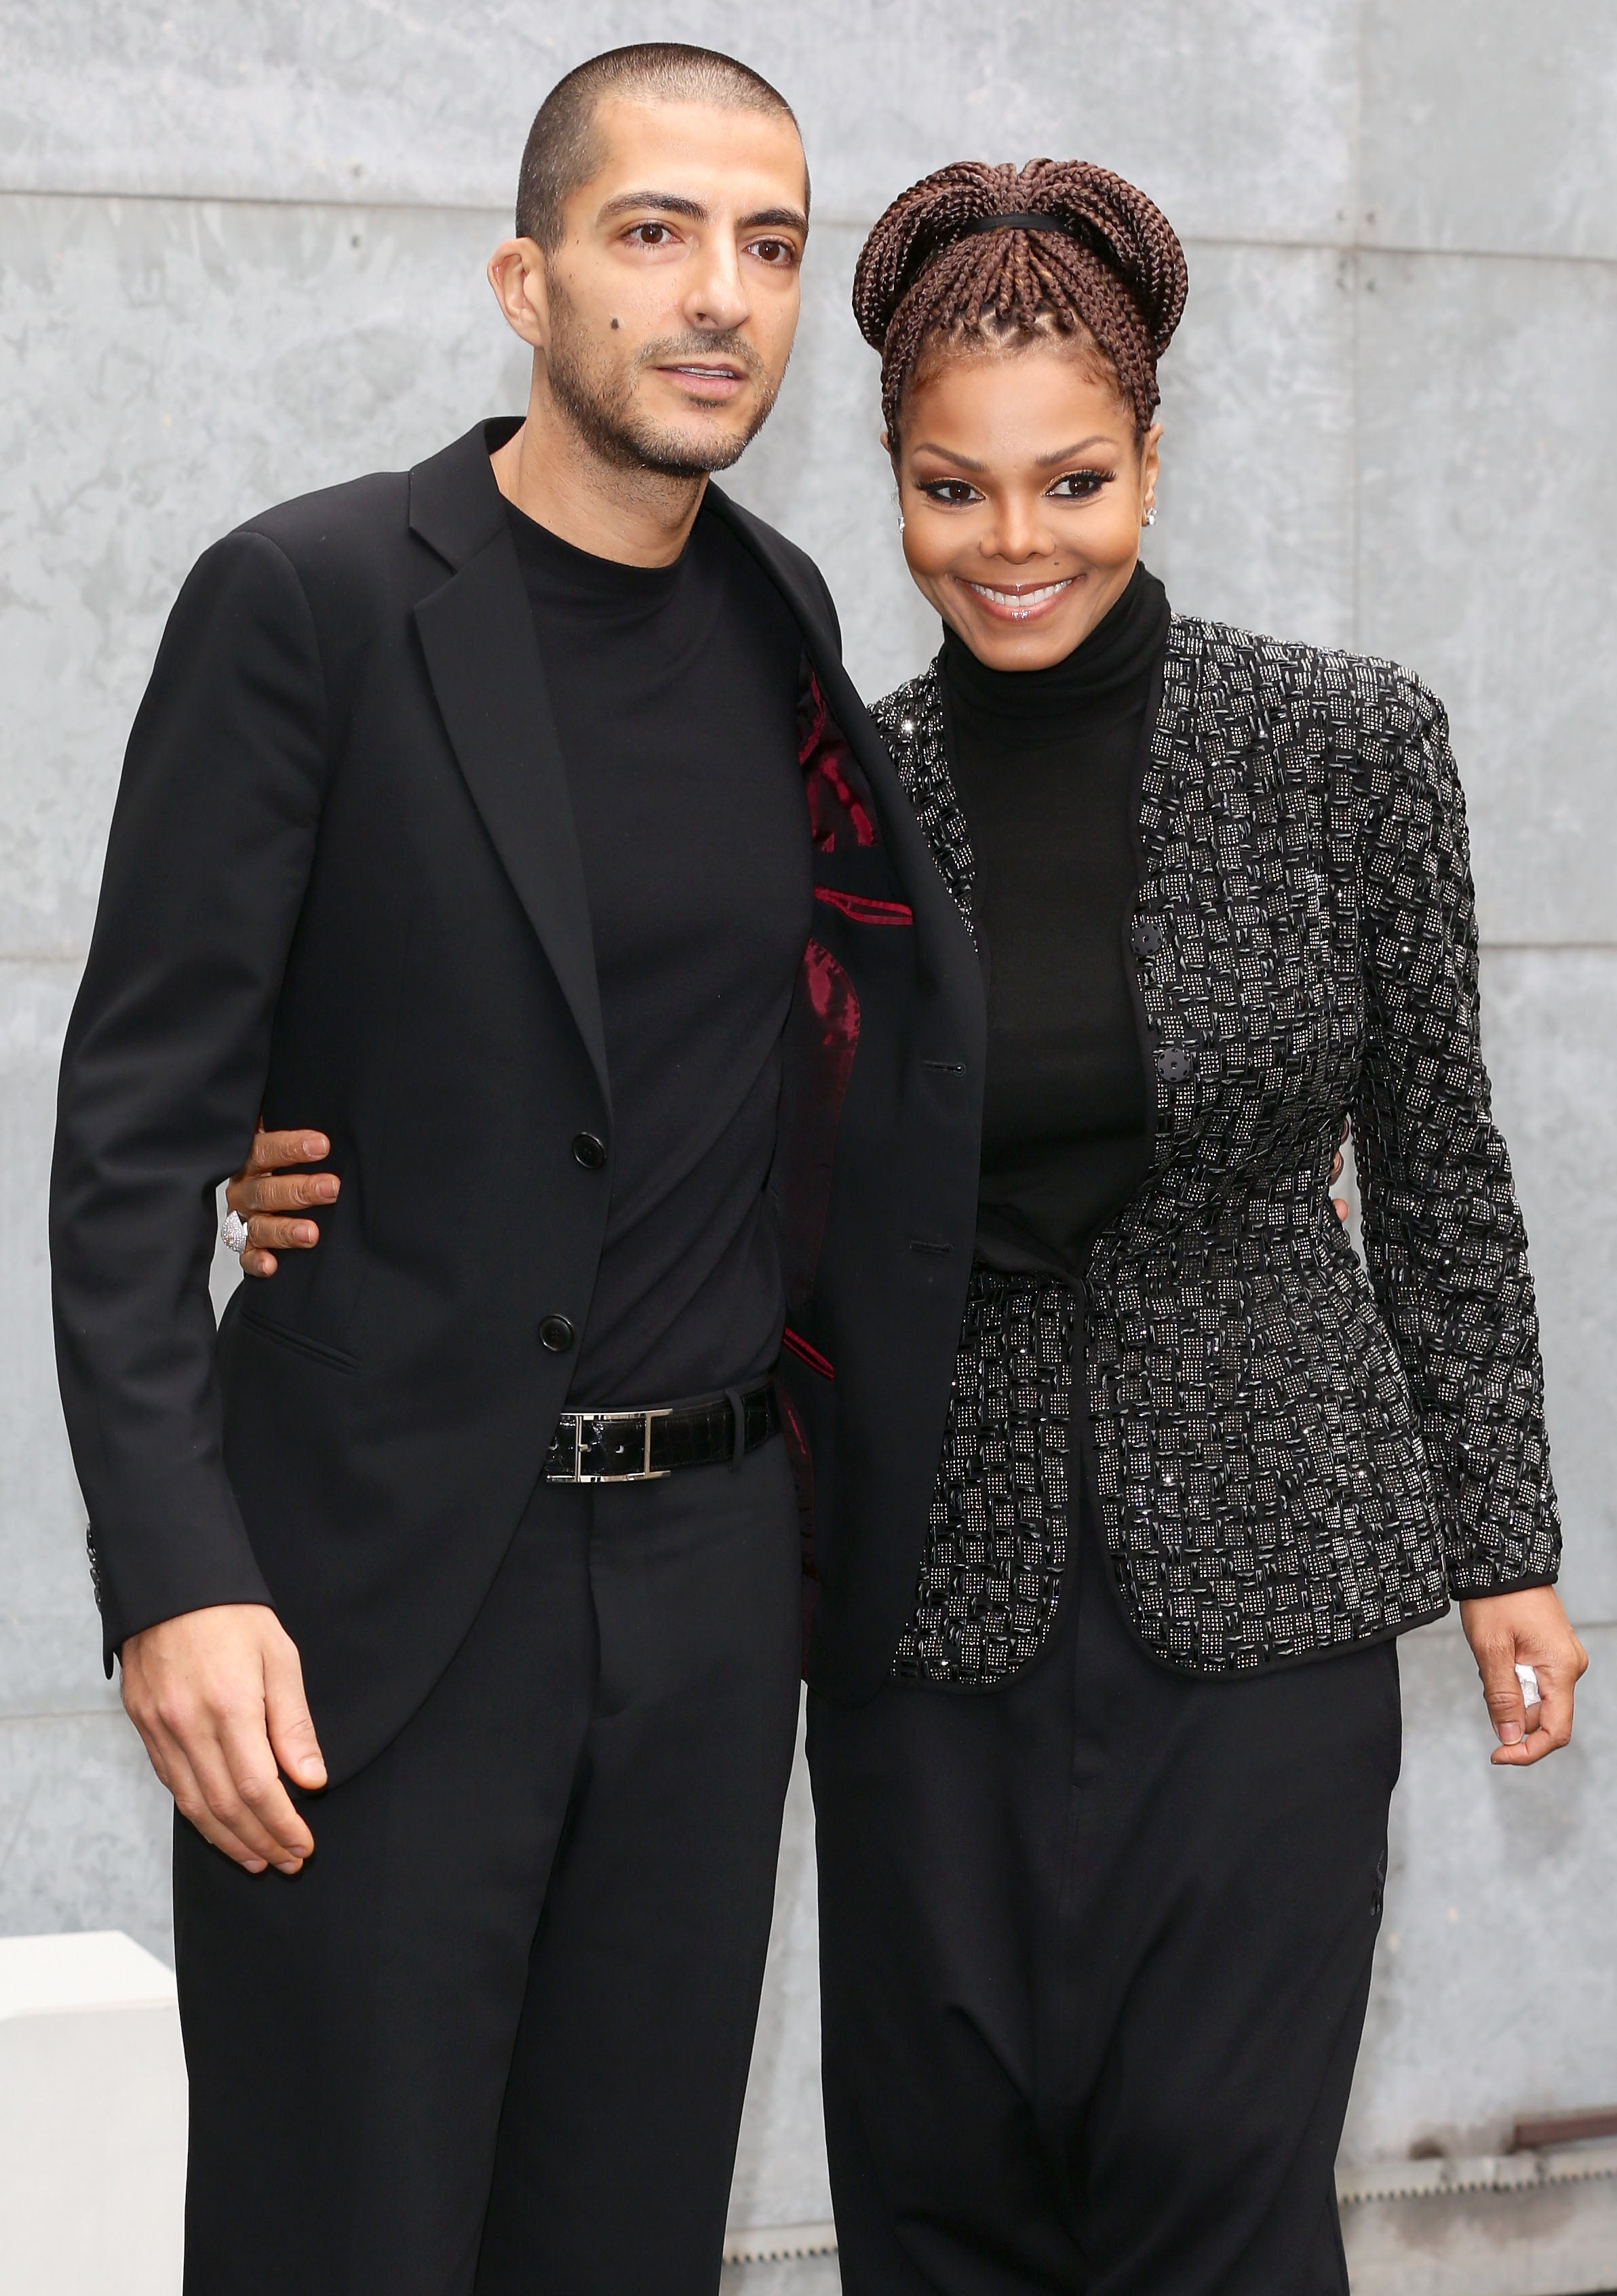 The Powerful Meaning Behind Janet Jackson and Wissam Al Mana's New Son's Name